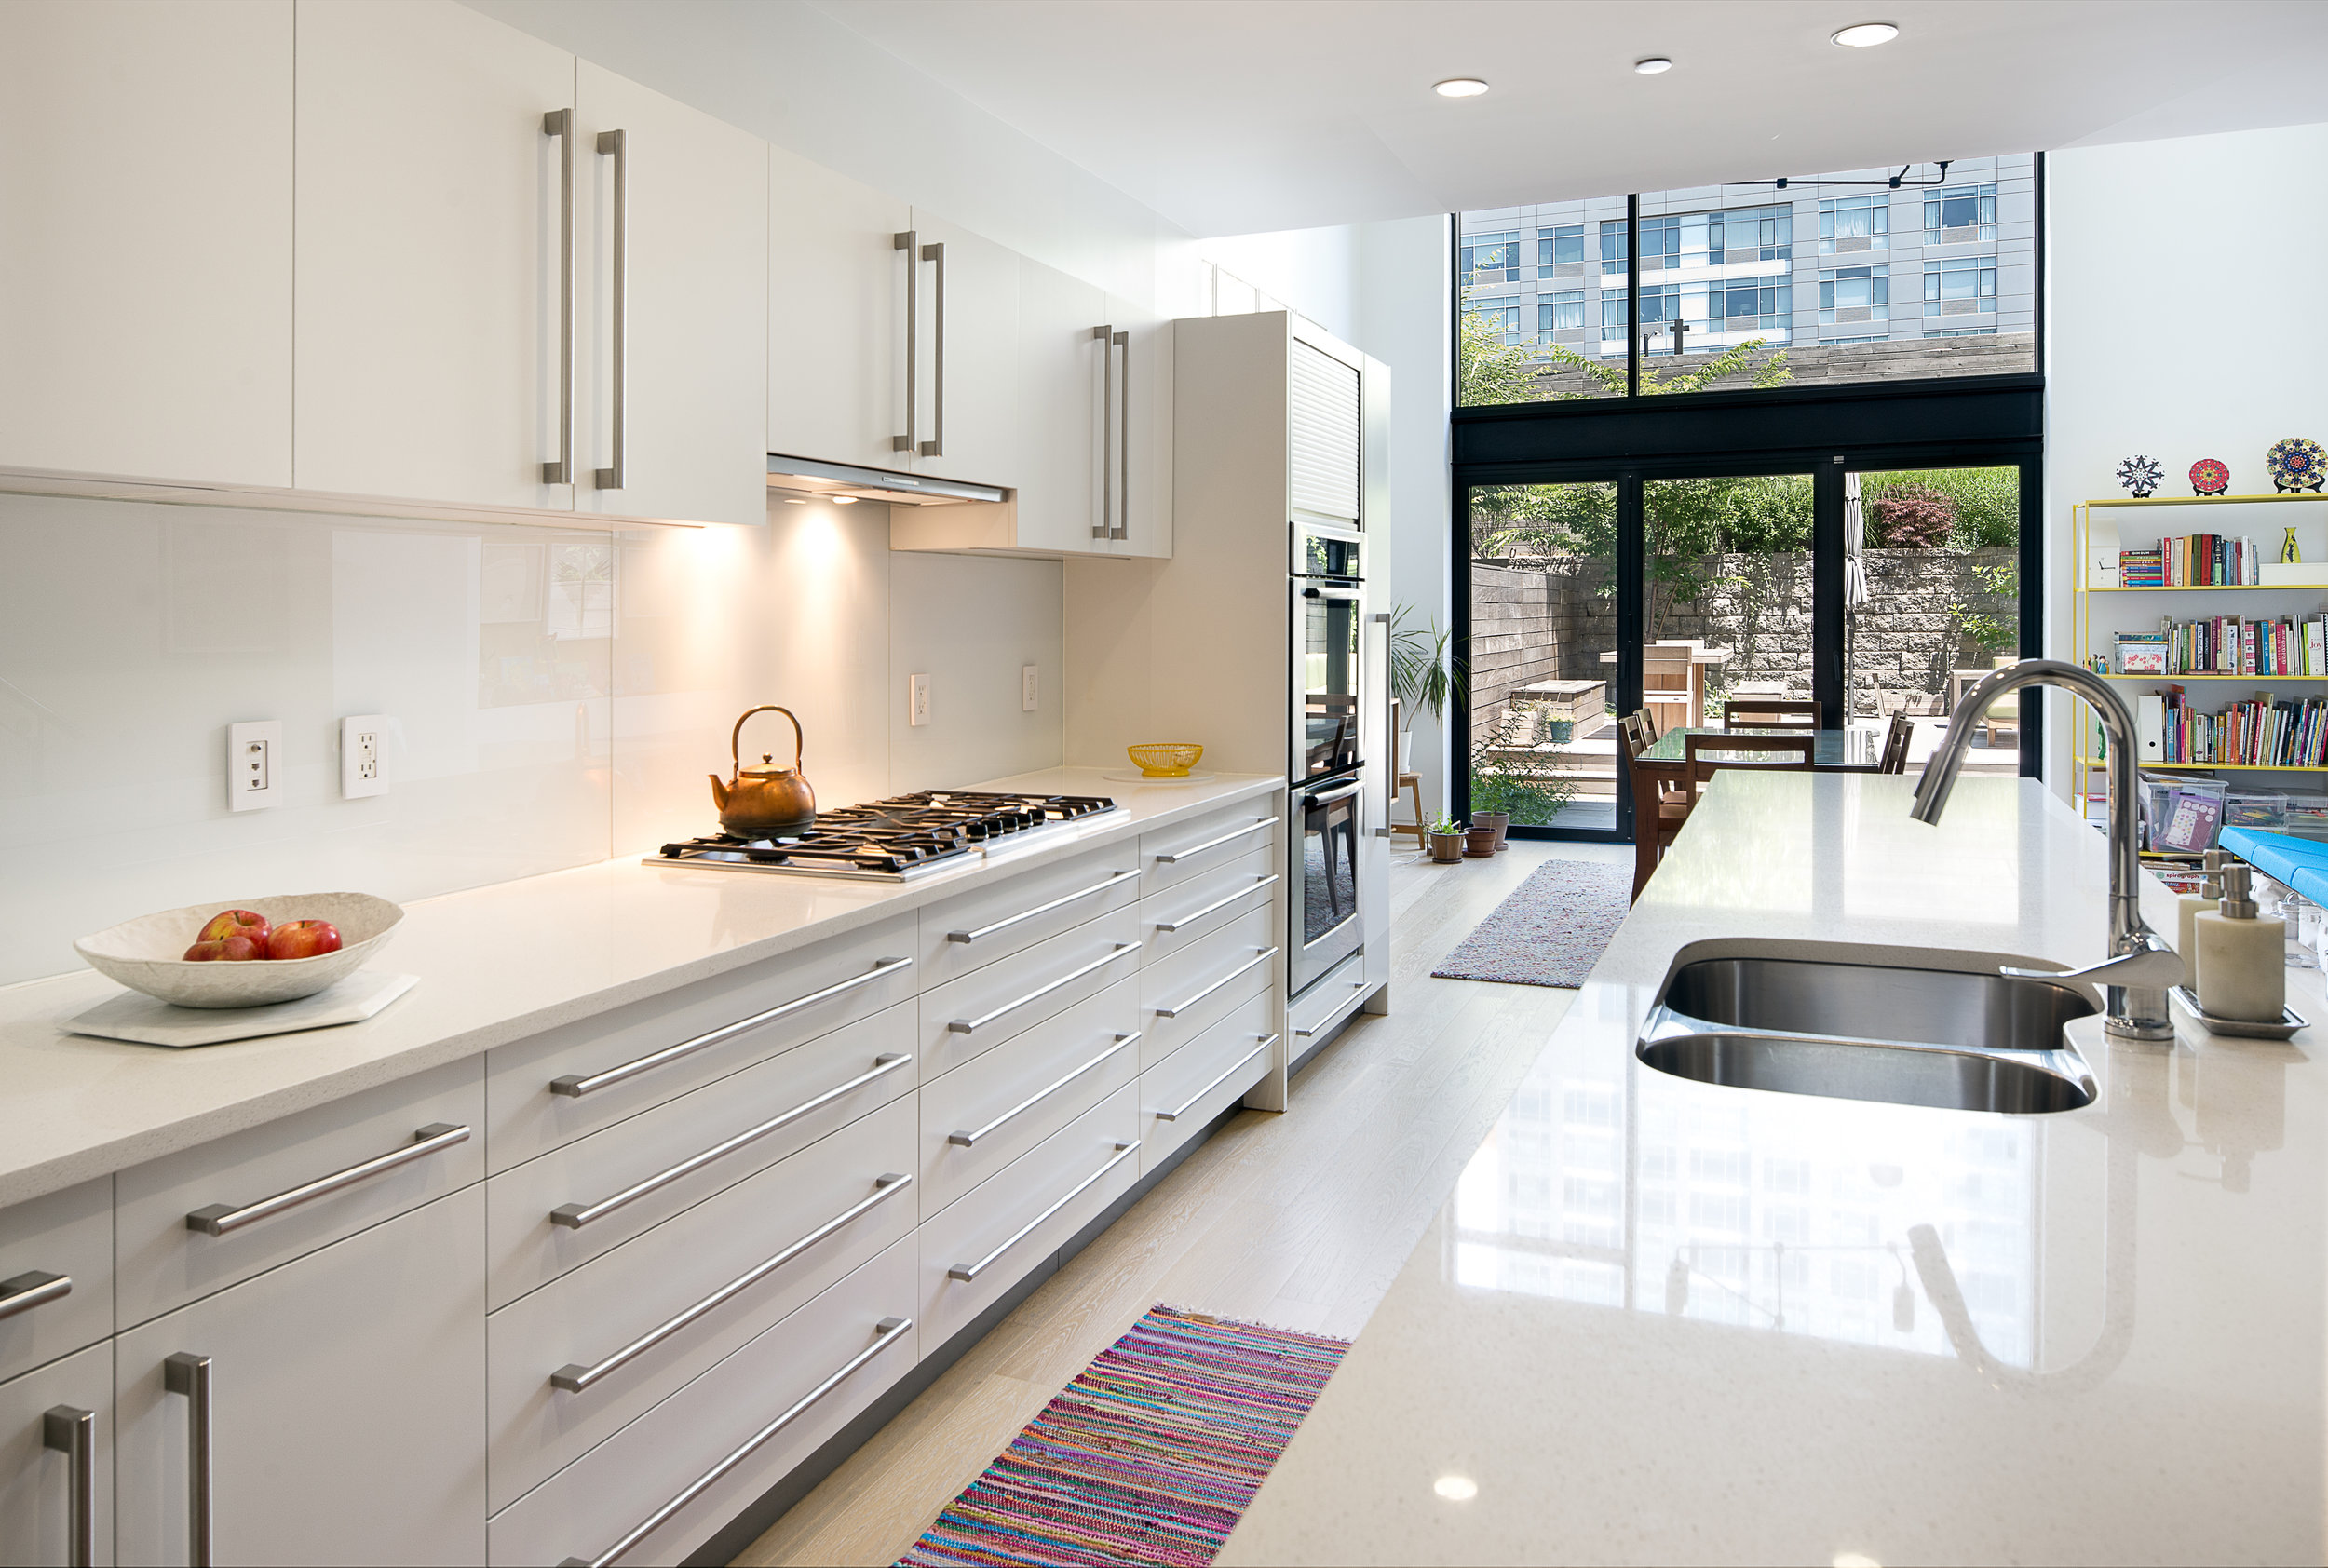 Pure Kitchen offers European-style custom cabinets that exclusively use water-borne coatings. This kitchen features soy-based adhesives in the plywood case construction. Photo courtesy of Pure Kitchen.